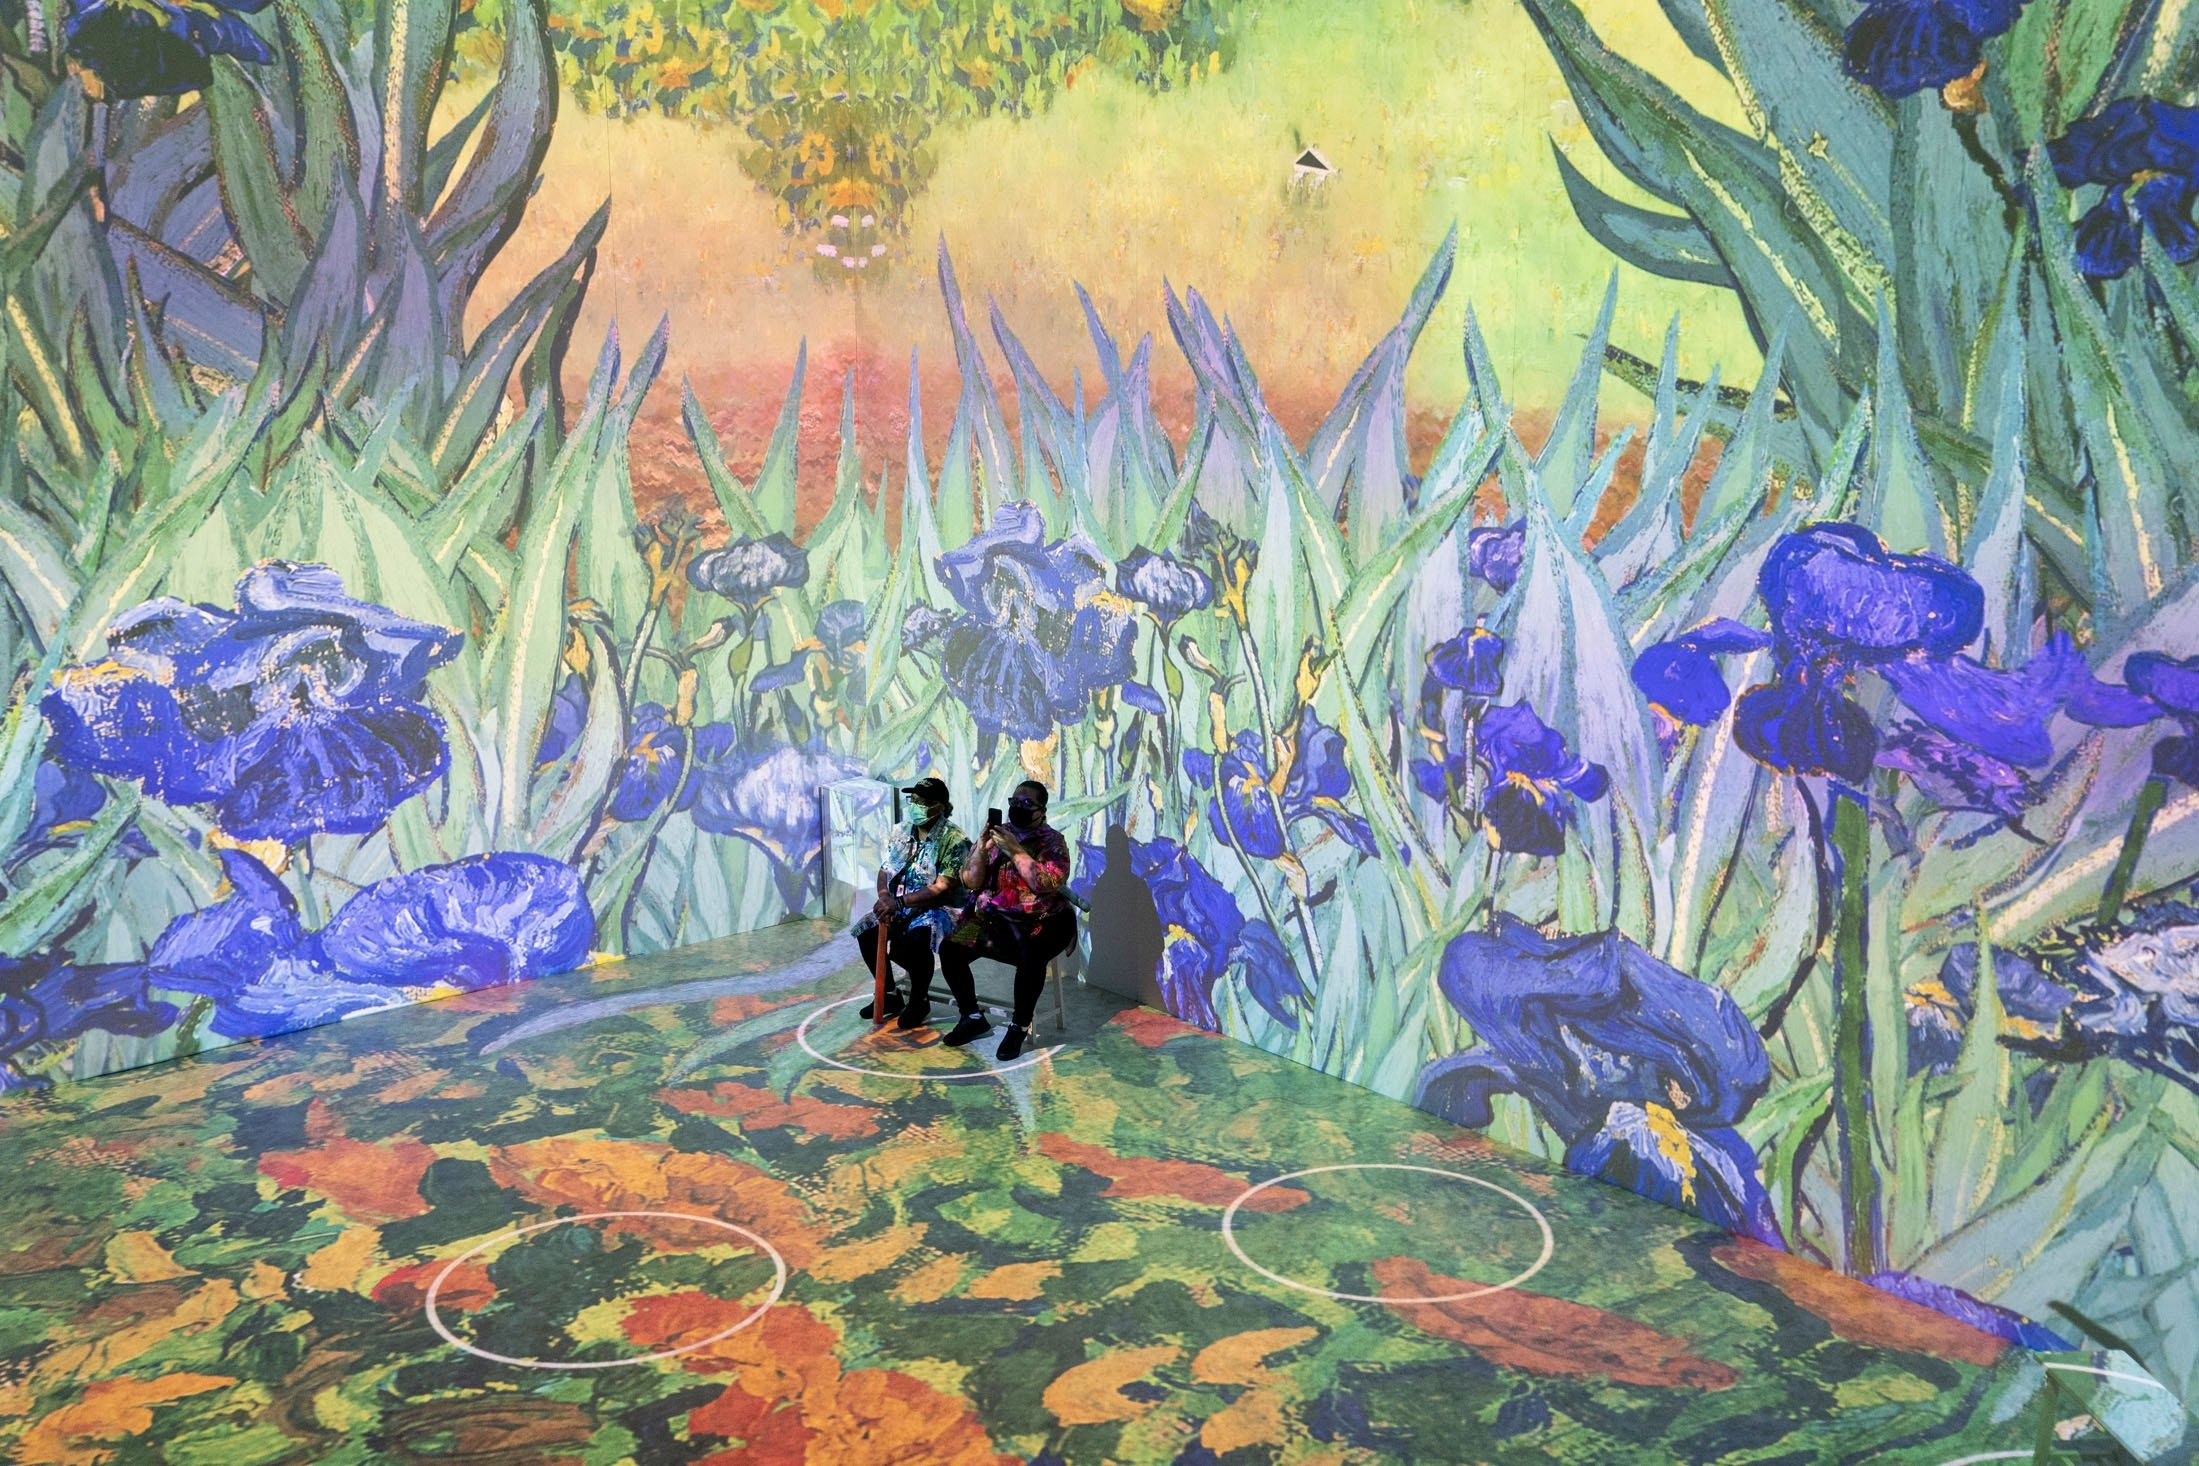 Projections of selected works of celebrated painter Vincent Van Gogh are displayed at a preview of the 'Immersive Van Gogh' exhibit at Pier 36 in New York, U.S., June 4, 2021. (AP Photo)